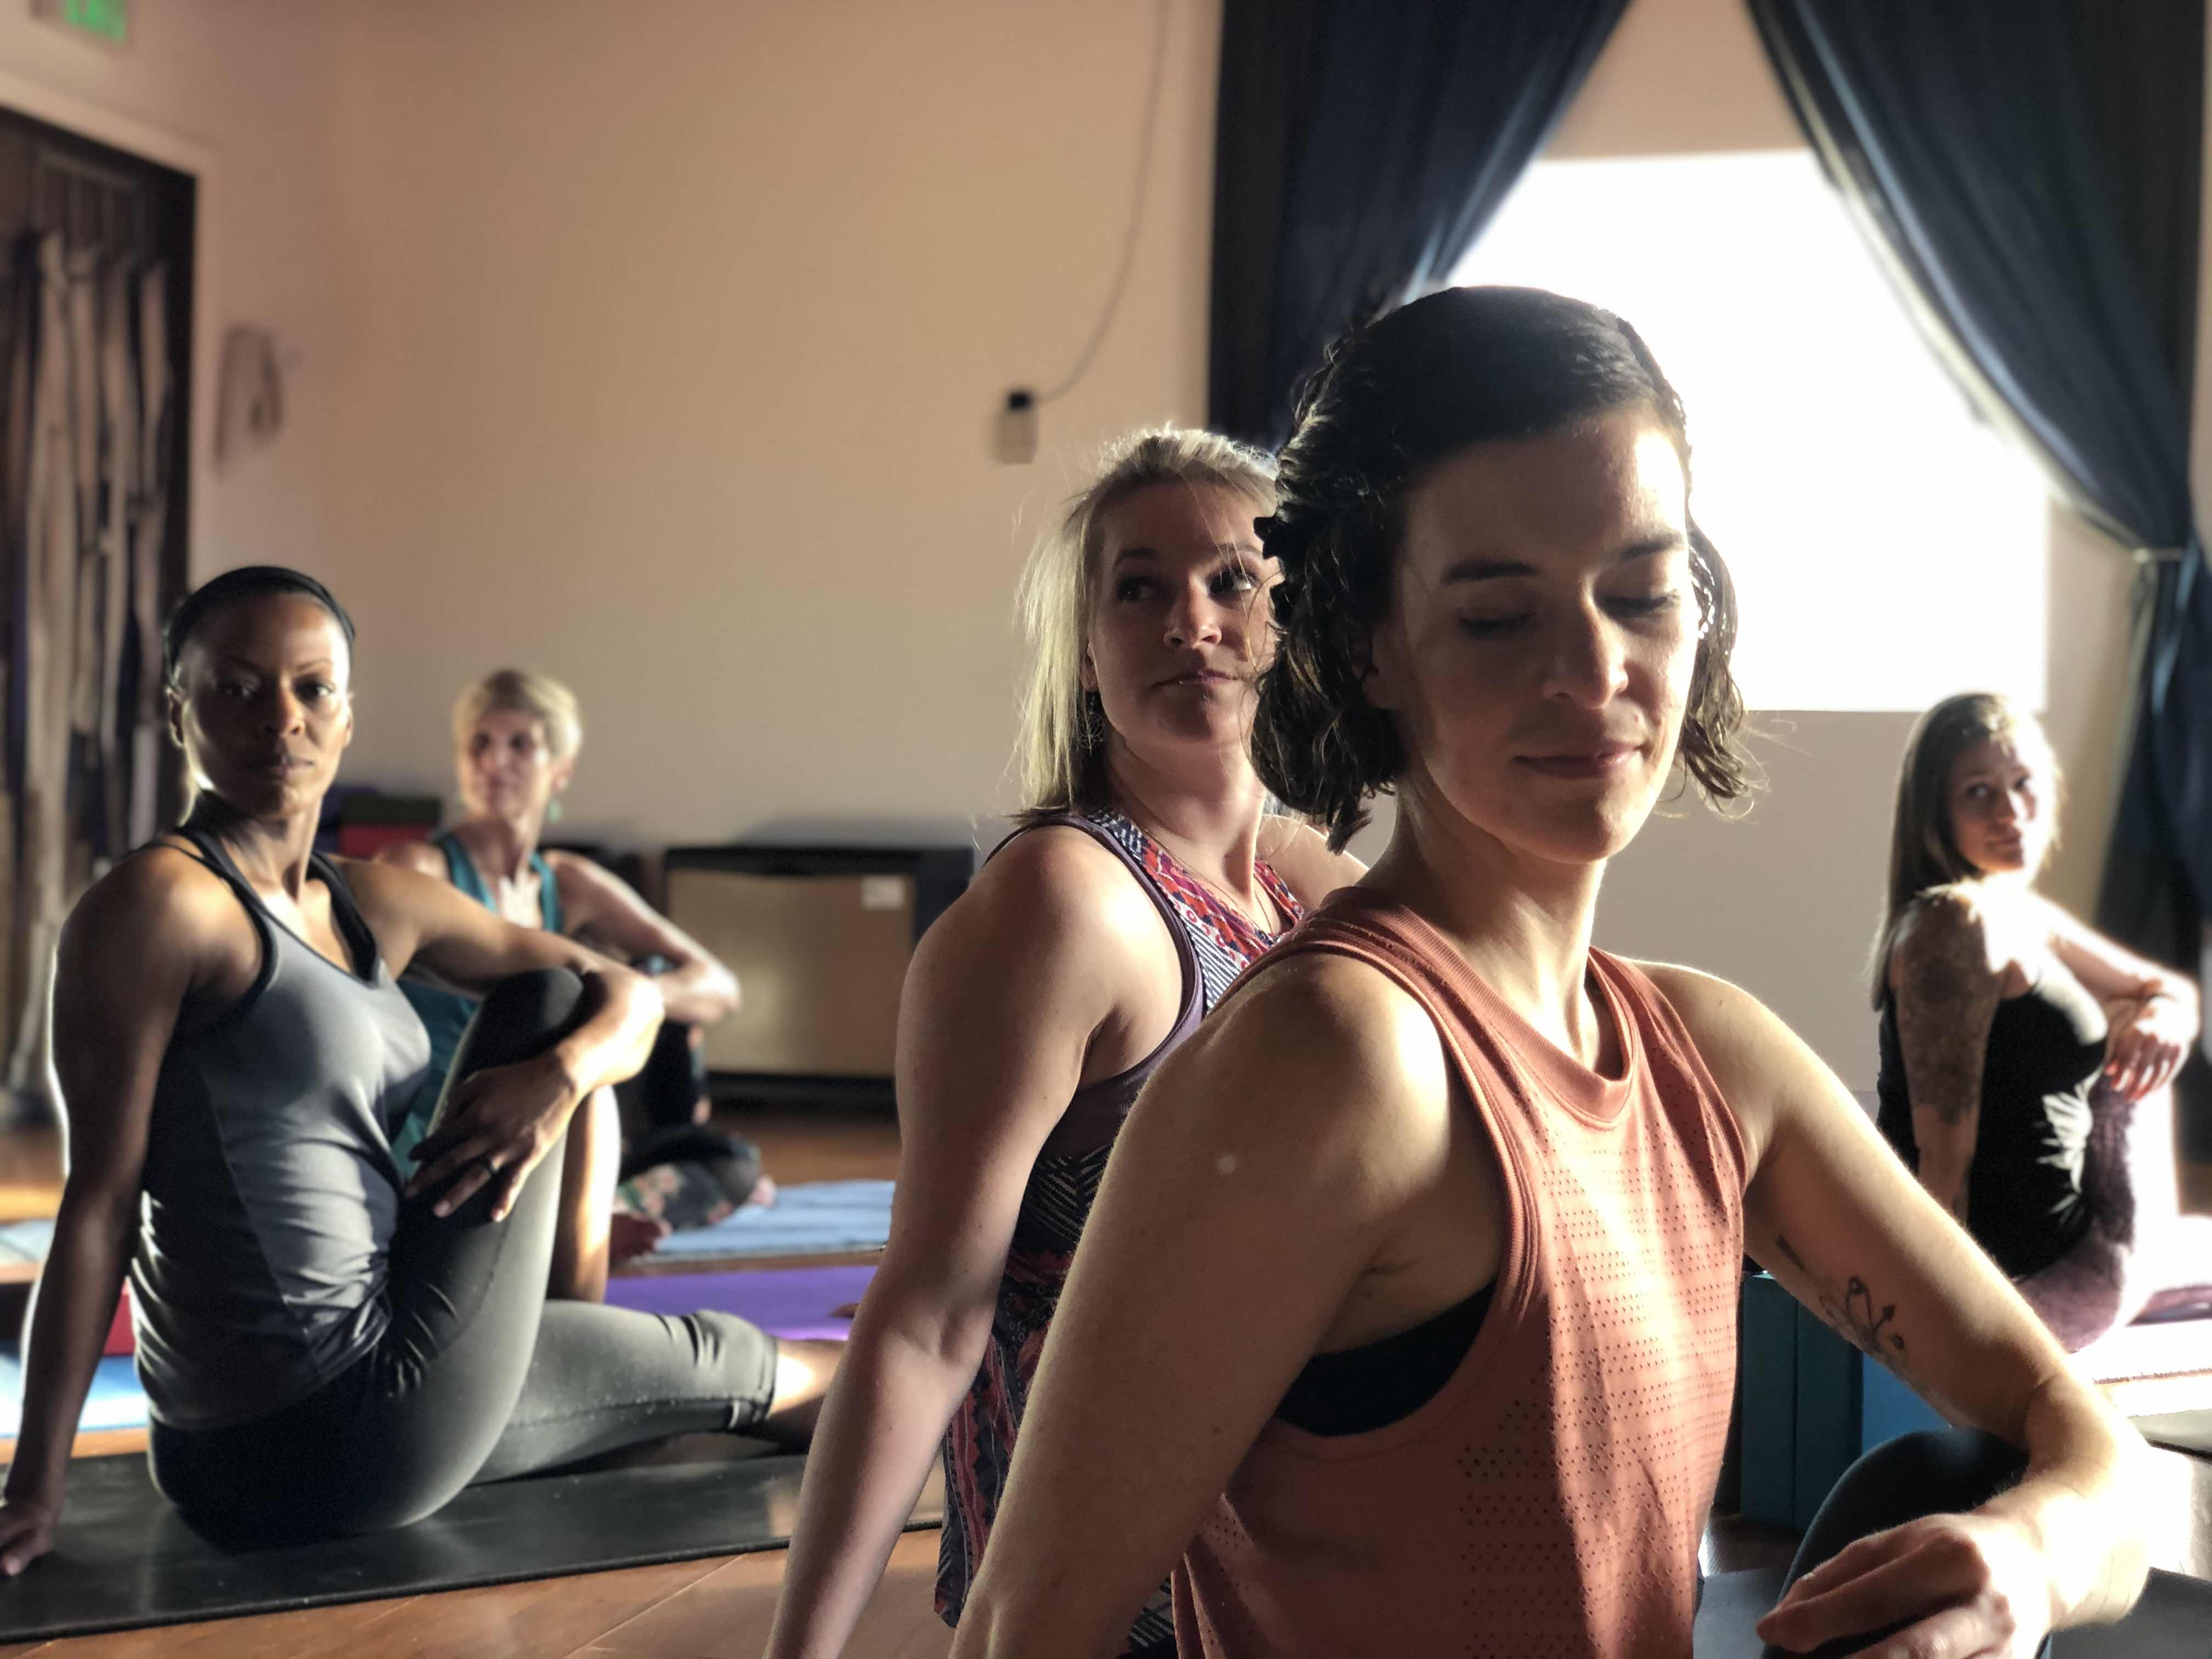 Photo of Erika in Ardha Matsyendrāsana with other students behind her